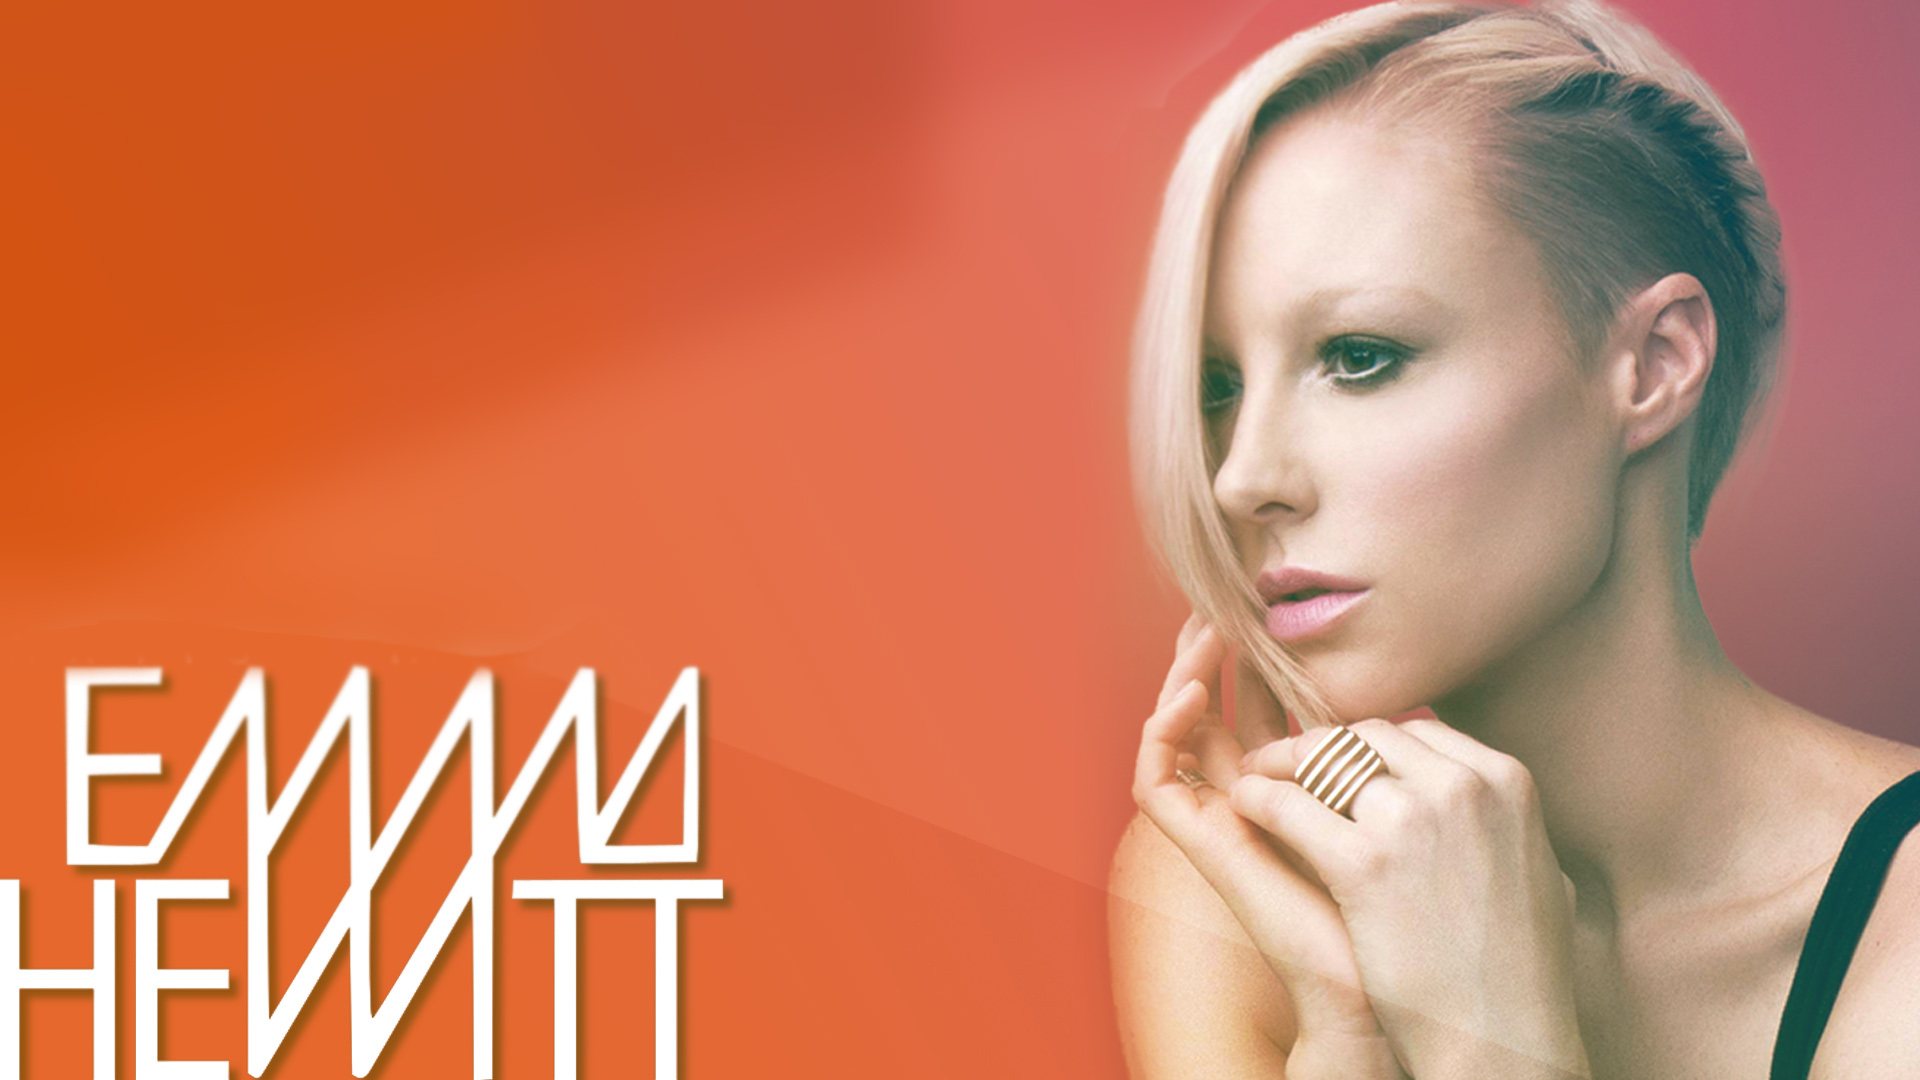 emma hewitt mix 2